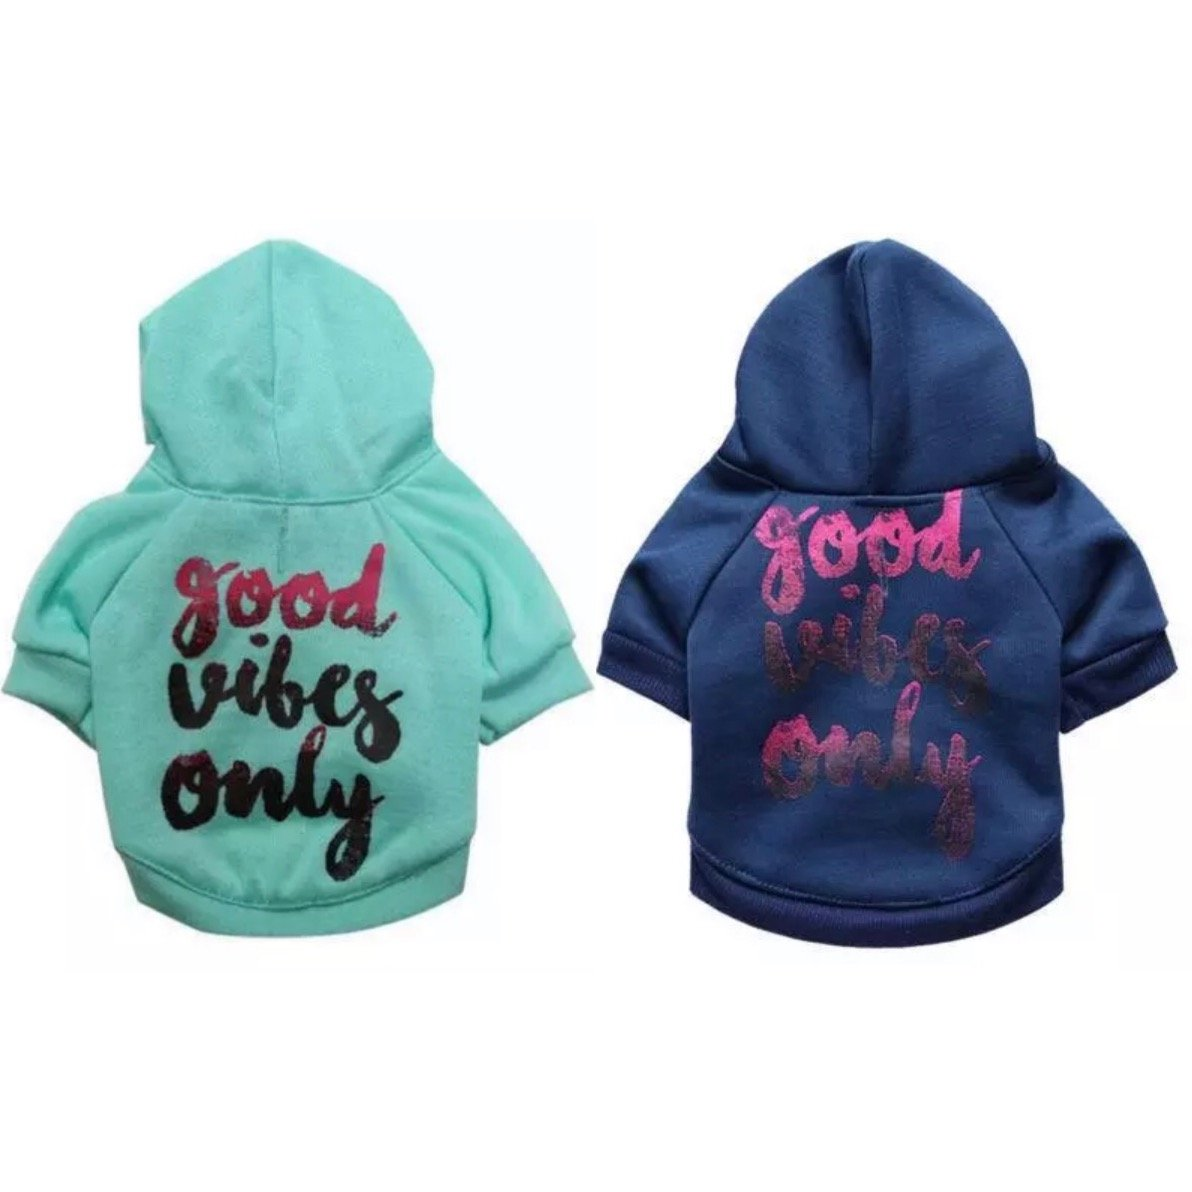 Good Vibes Only Pet Hoodie XS-L Sweatshirt Puppy Dog Warm Pullover Hooded Top Coat Pets Clothes